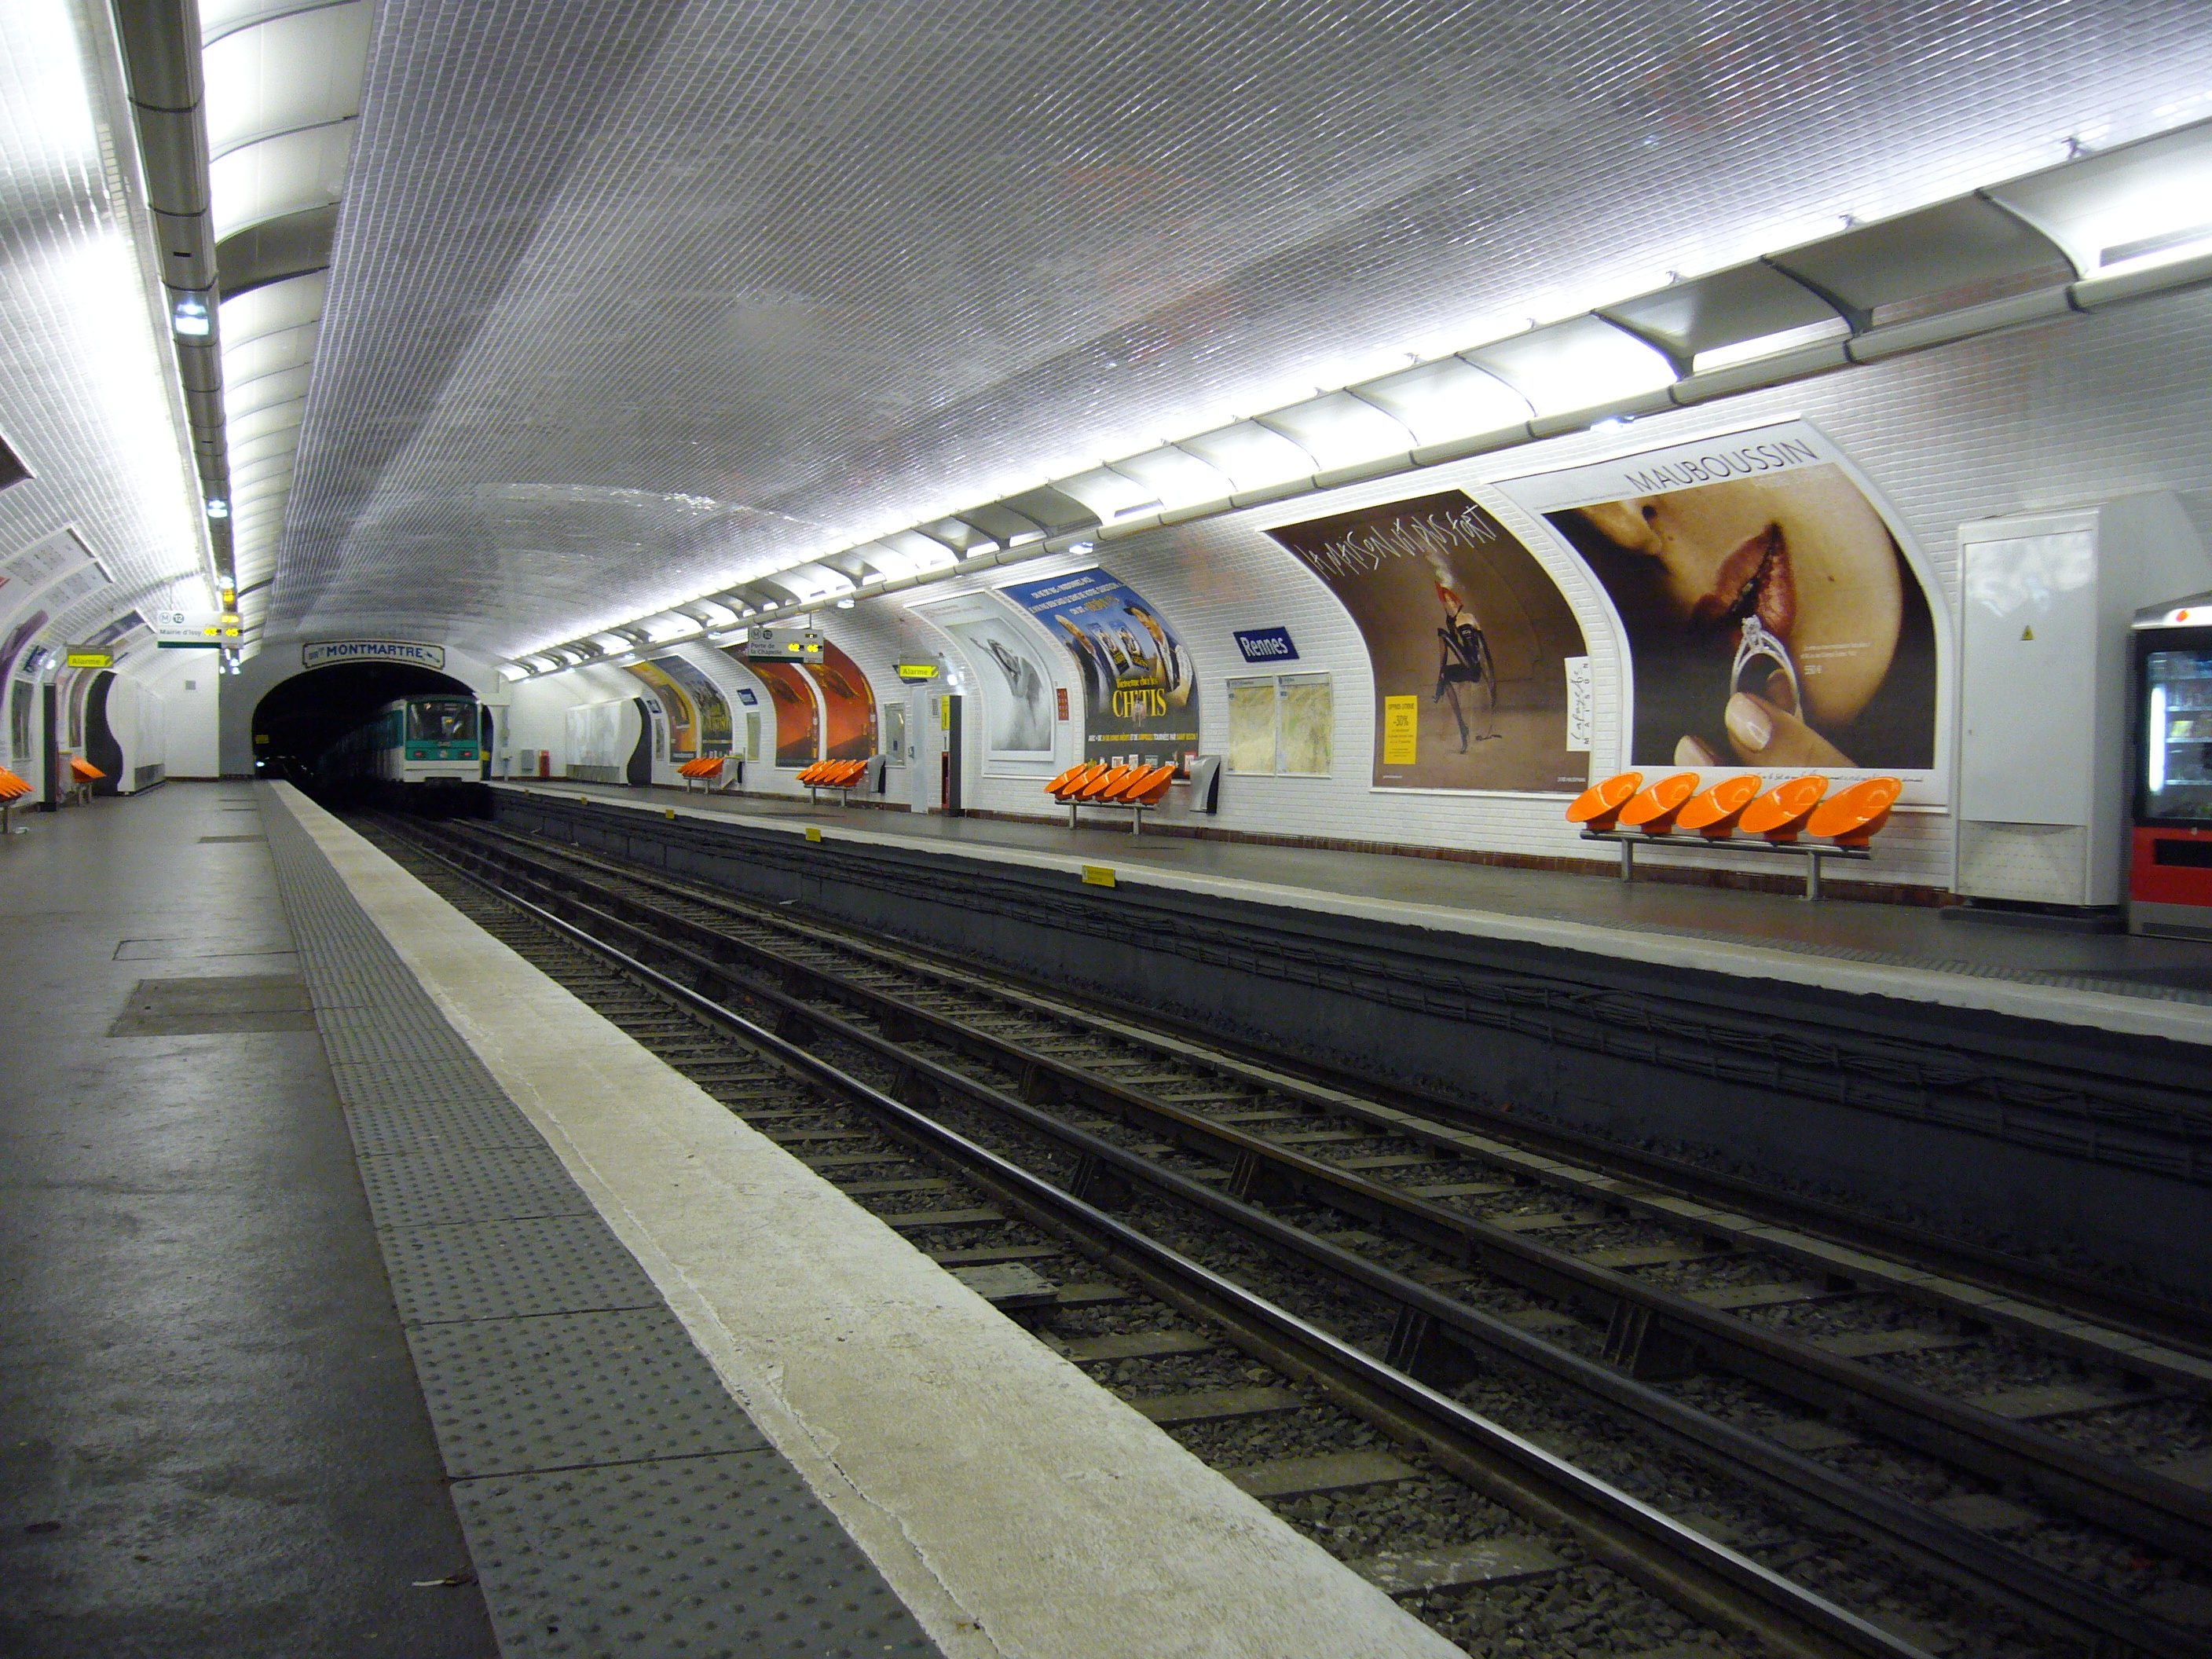 file metro paris ligne 12 station wikimedia commons. Black Bedroom Furniture Sets. Home Design Ideas